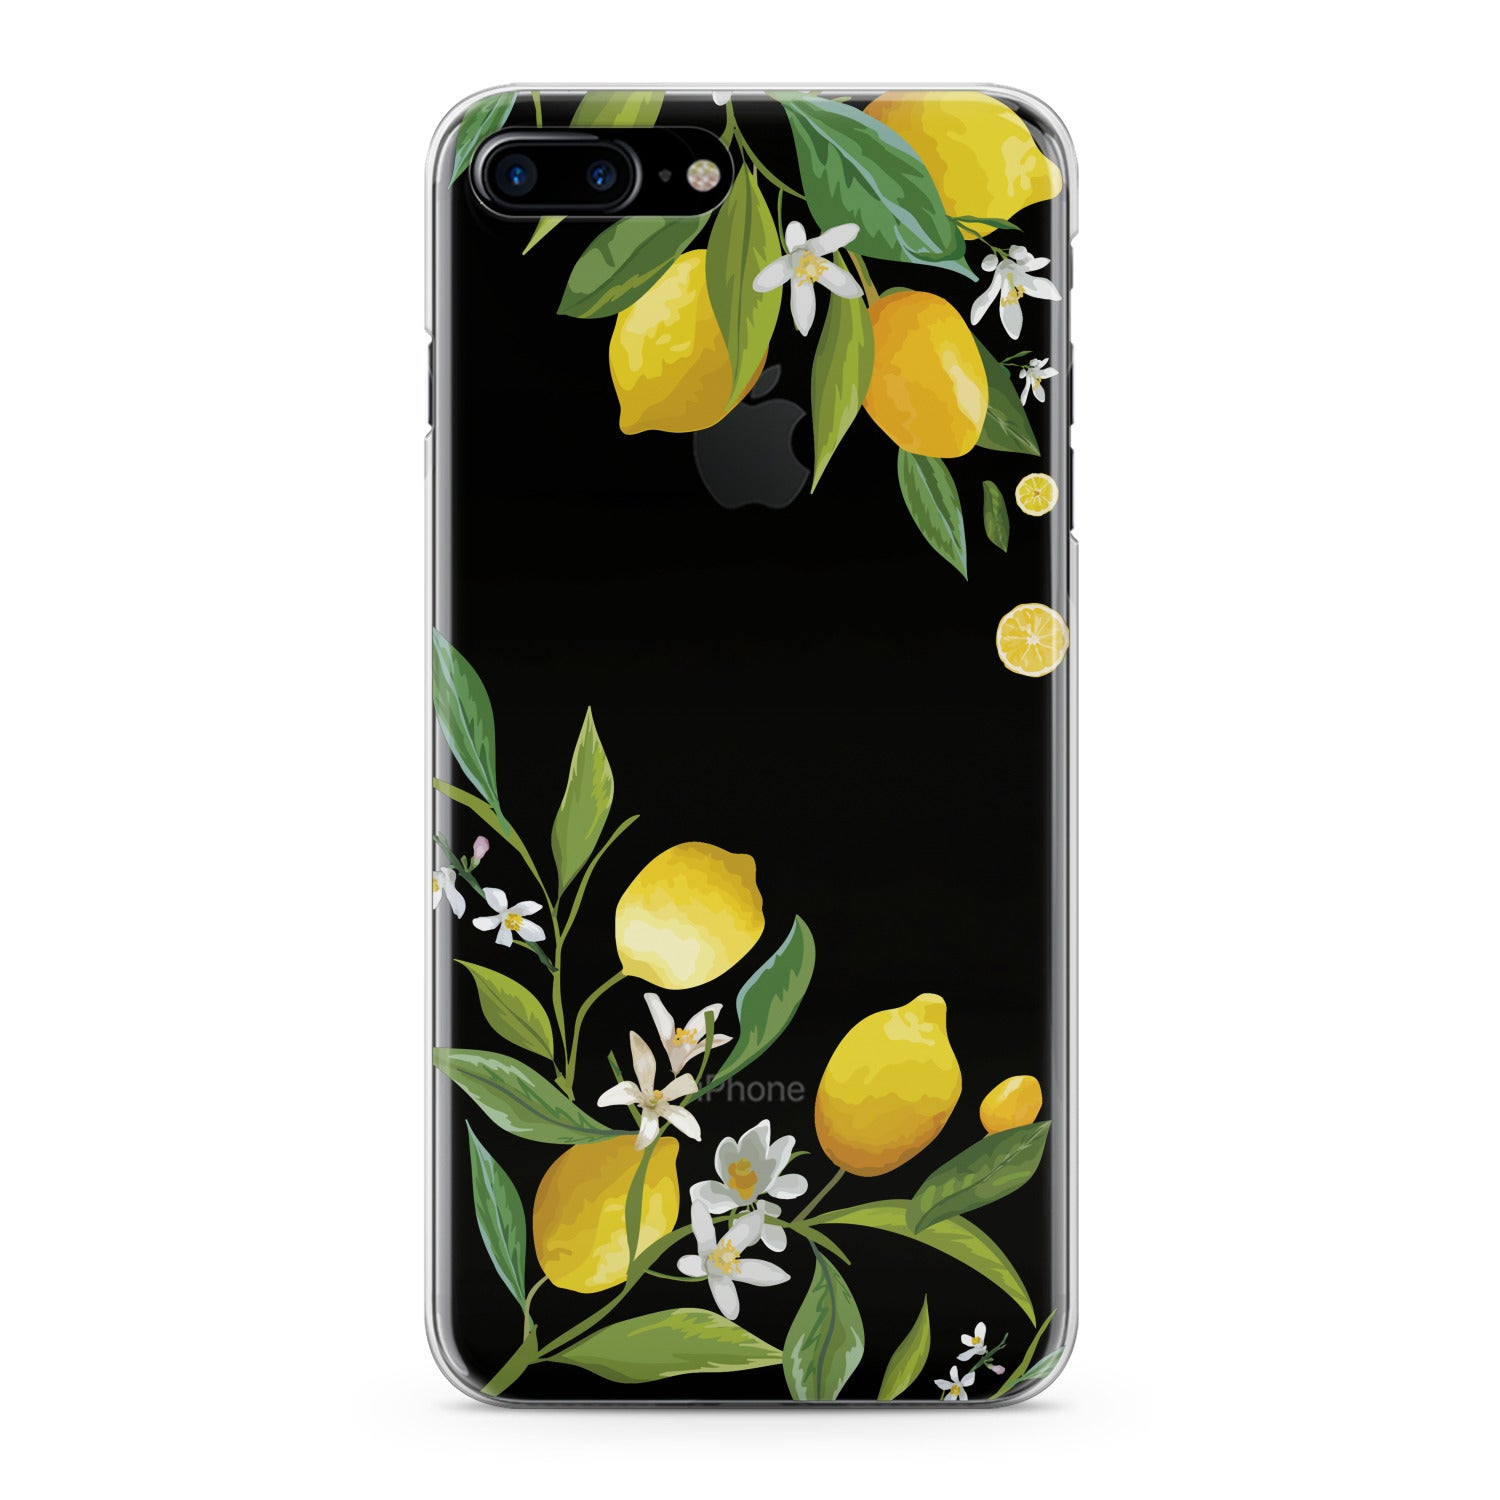 Lex Altern Juicy Lemons Phone Case for your iPhone & Android phone.